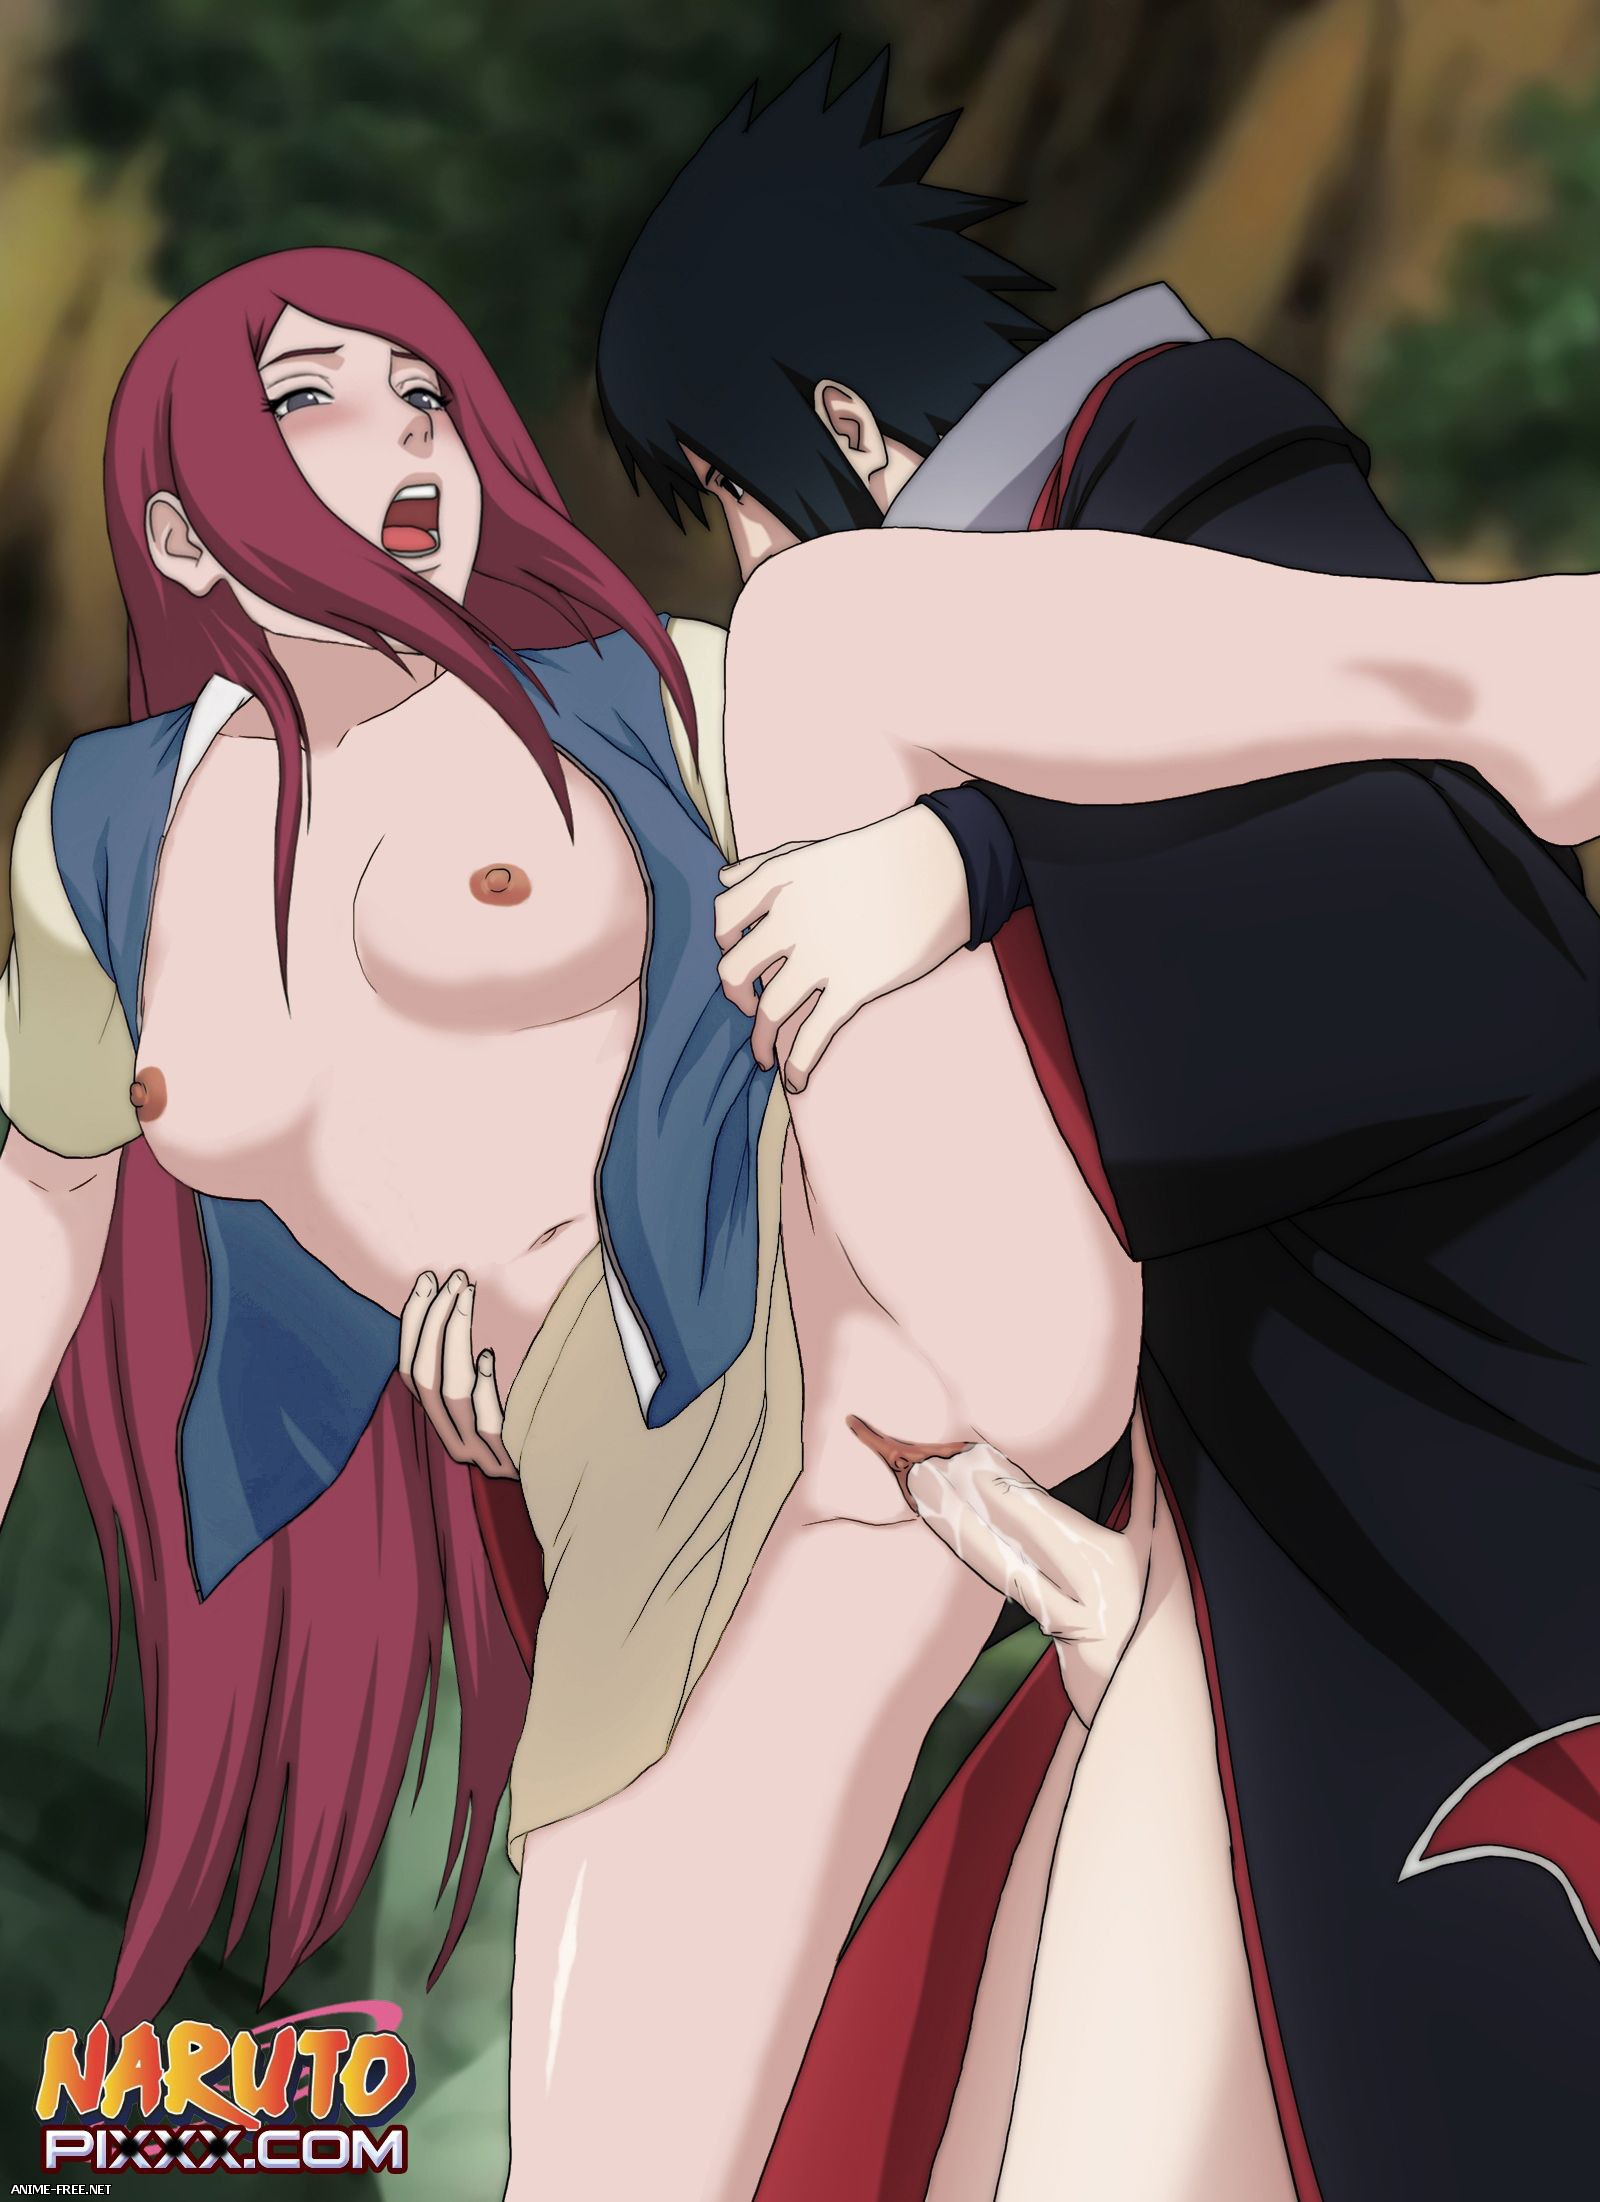 PiXXX / AnimePiXXX / Remixxx [2013-2014] [Uncen] [Naruto,Bleach,One Piece,Fairy Tail] [JPG,PNG,GIF] Hentai ART